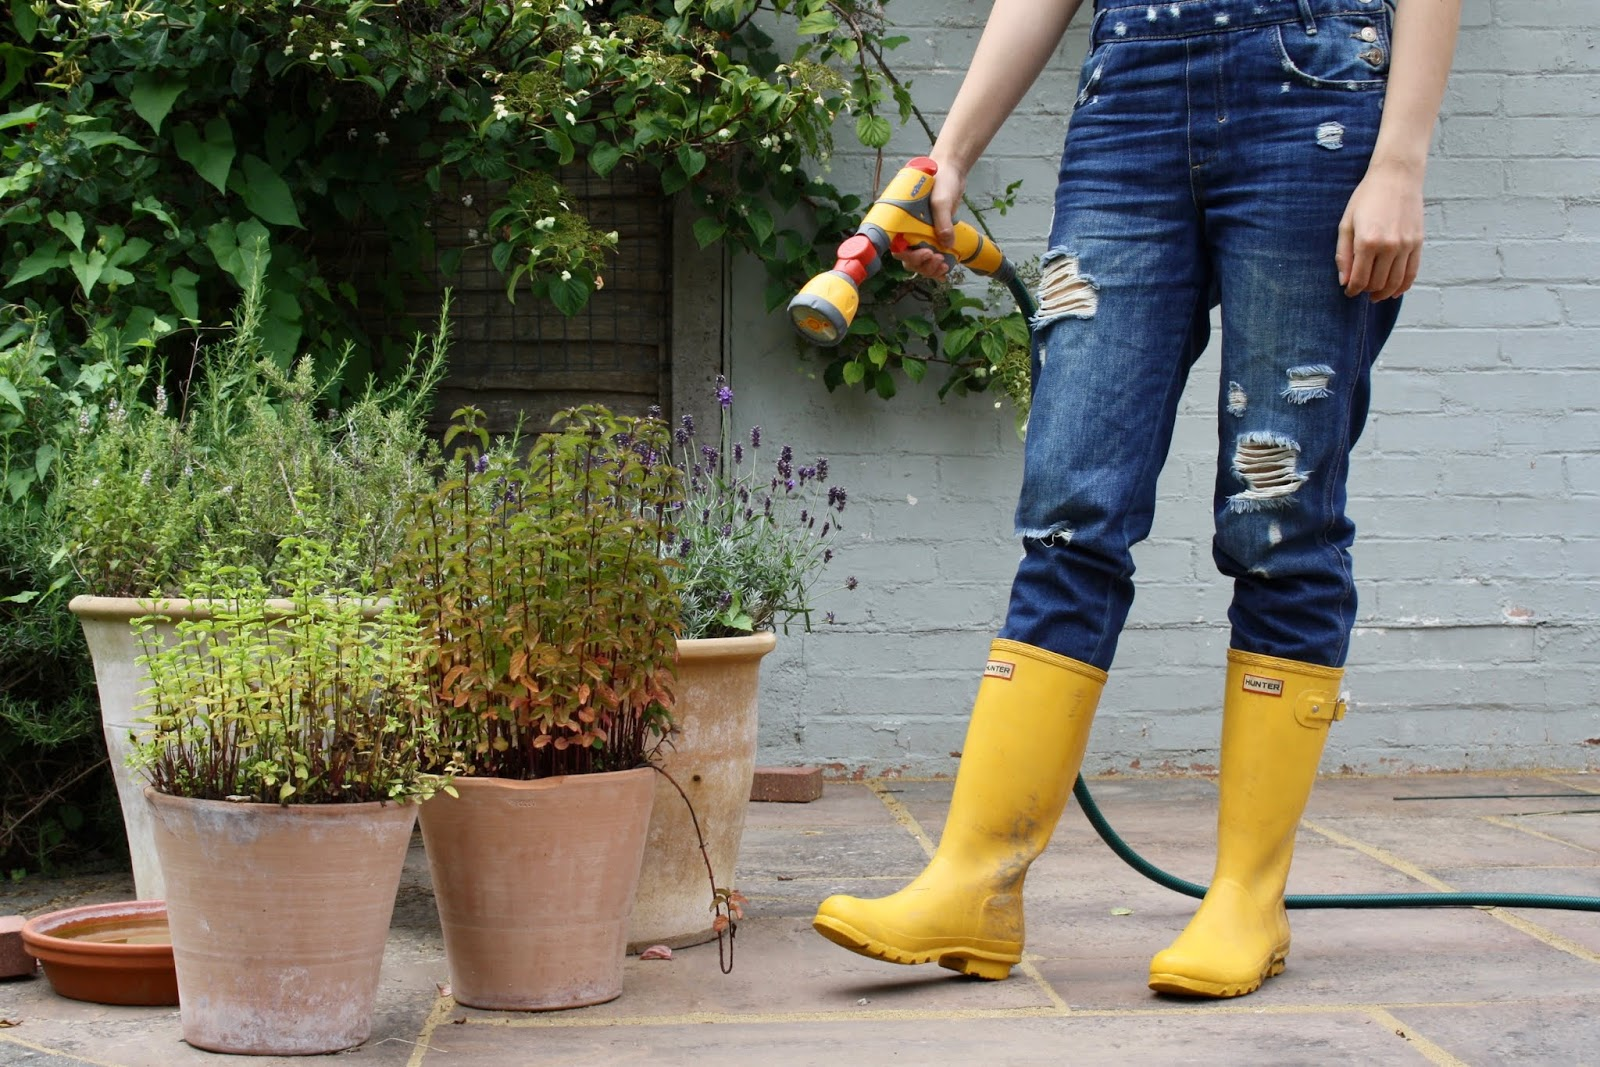 Abbey, visible from the waist down wearing yellow wellies and dungarees, stands next to pot plants in the garden, holding a hose